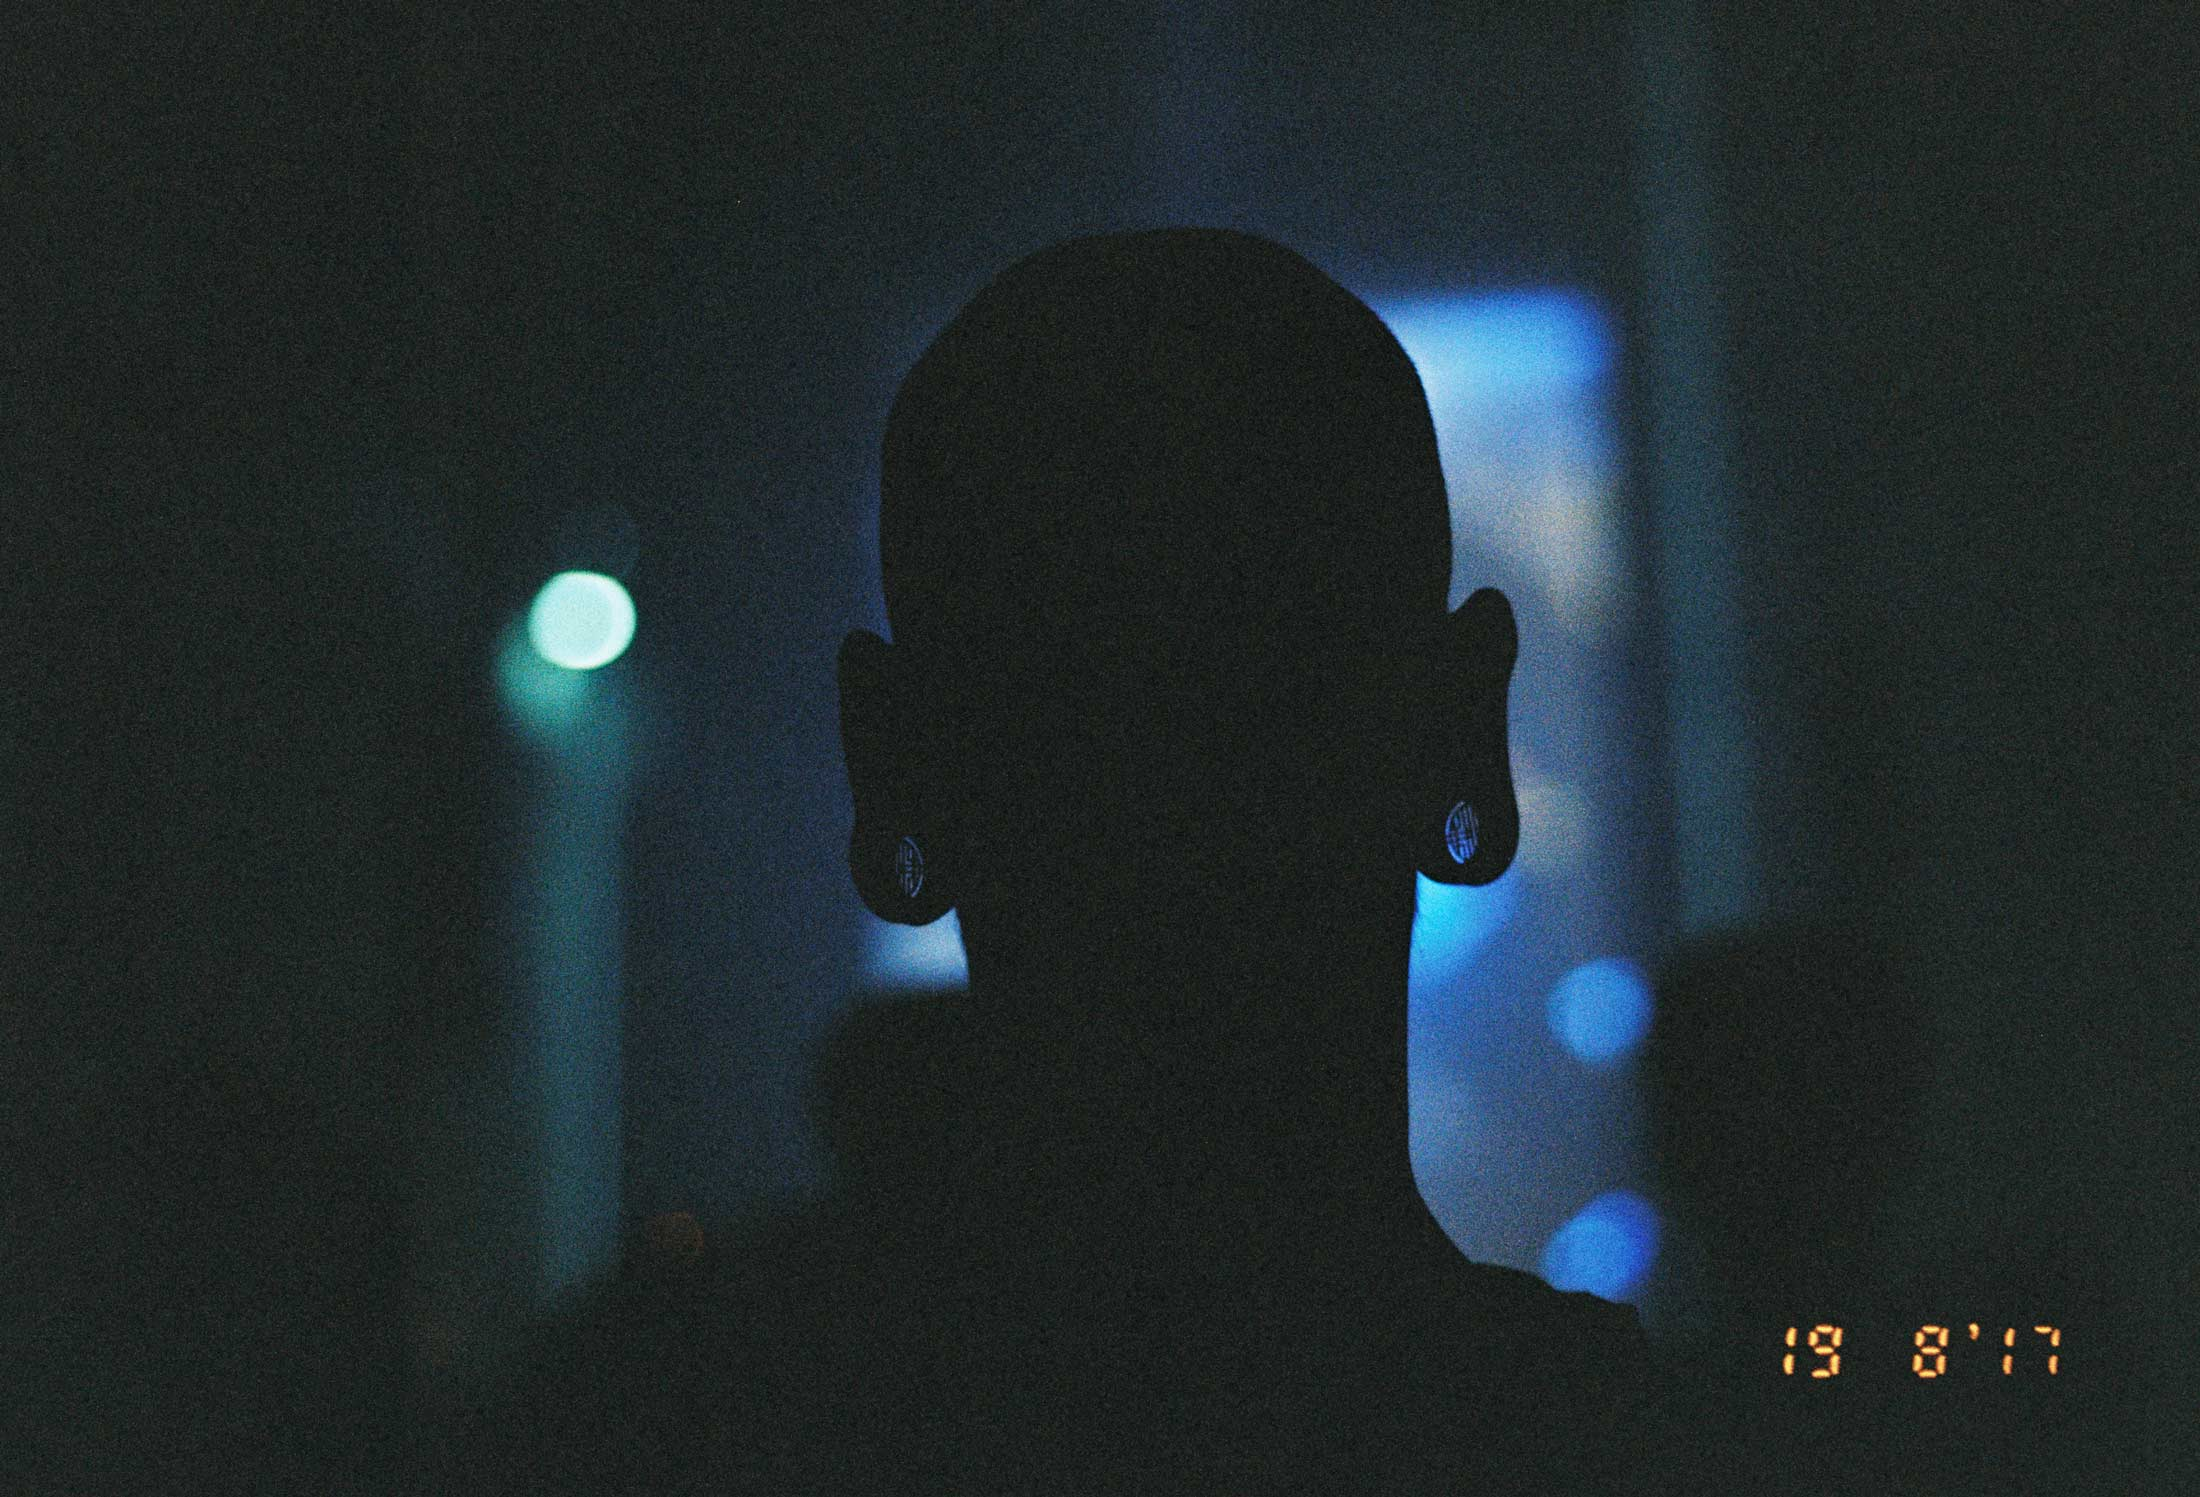 Ear Holes Berlin Underground Techno Tresor Ohm Rave Nightlife